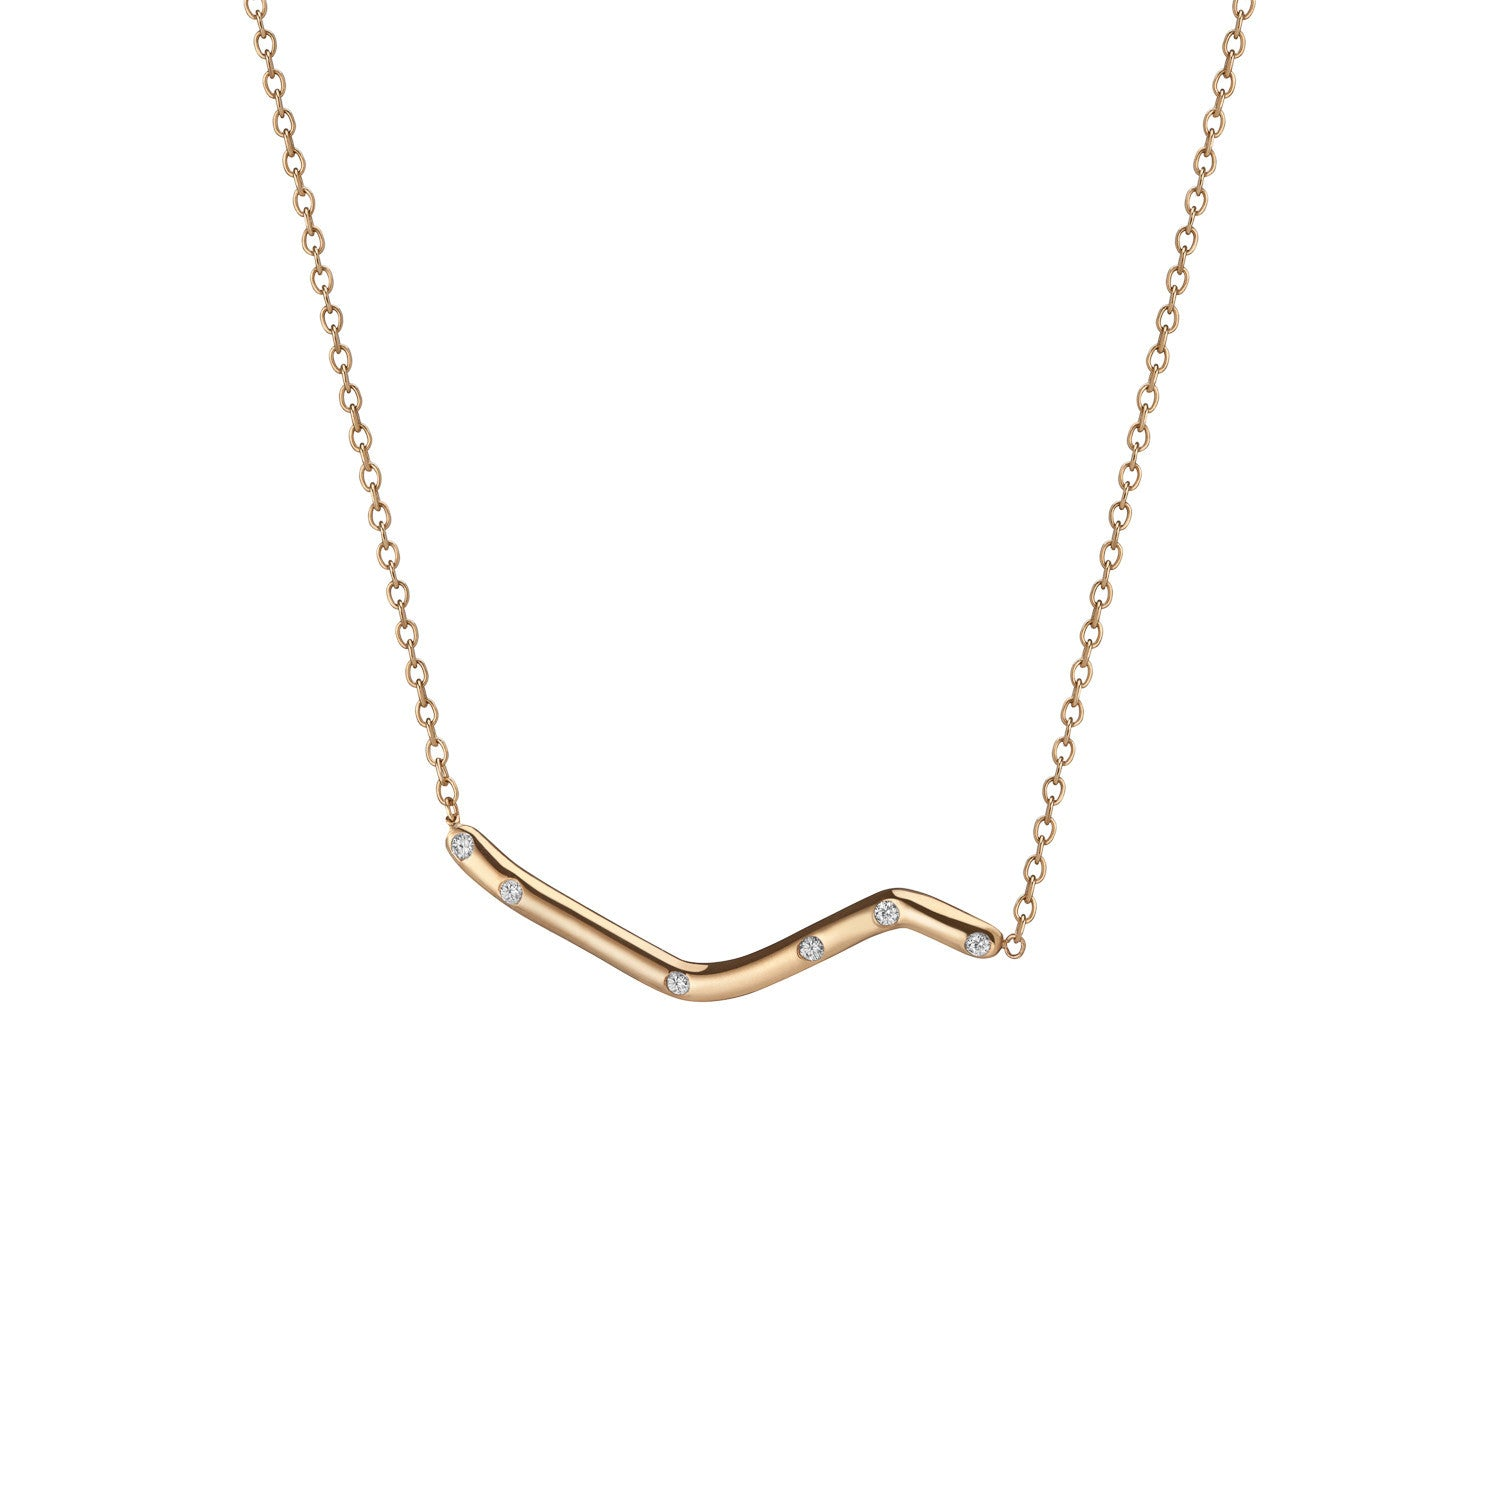 14K Gold Subway Necklace - Broadway Central Park to City Hall